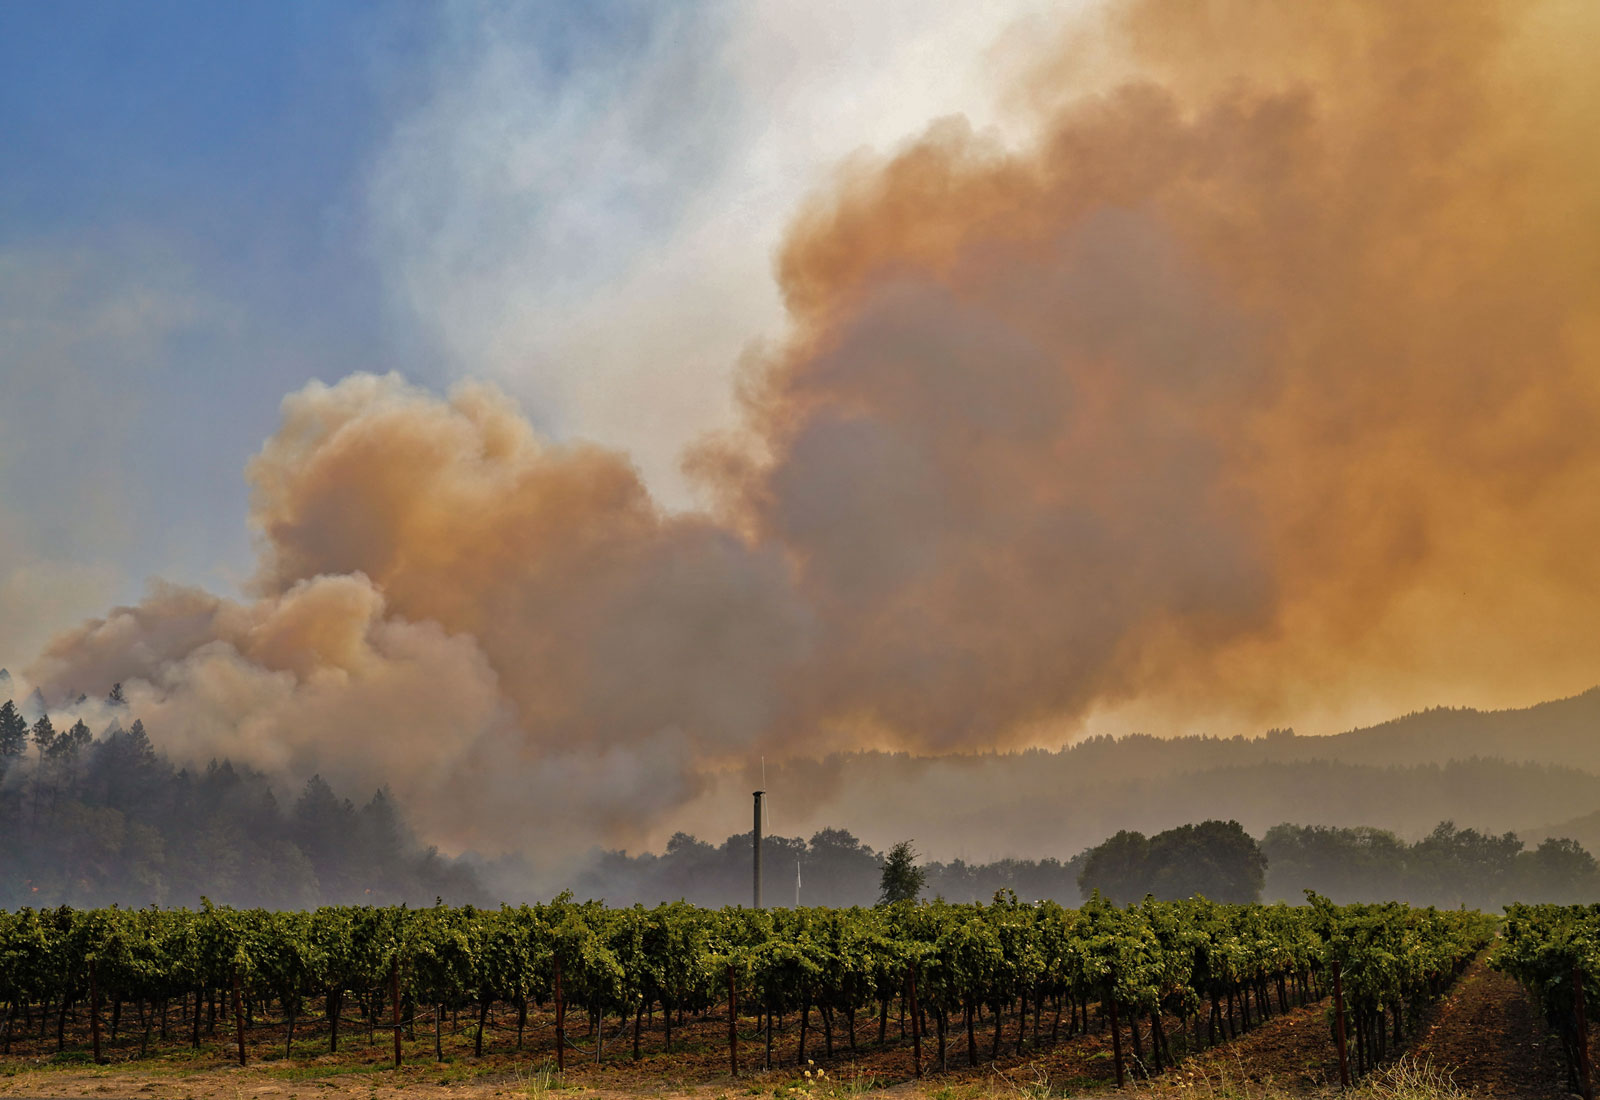 Smoke from a wildfire rising above a field of grape vines